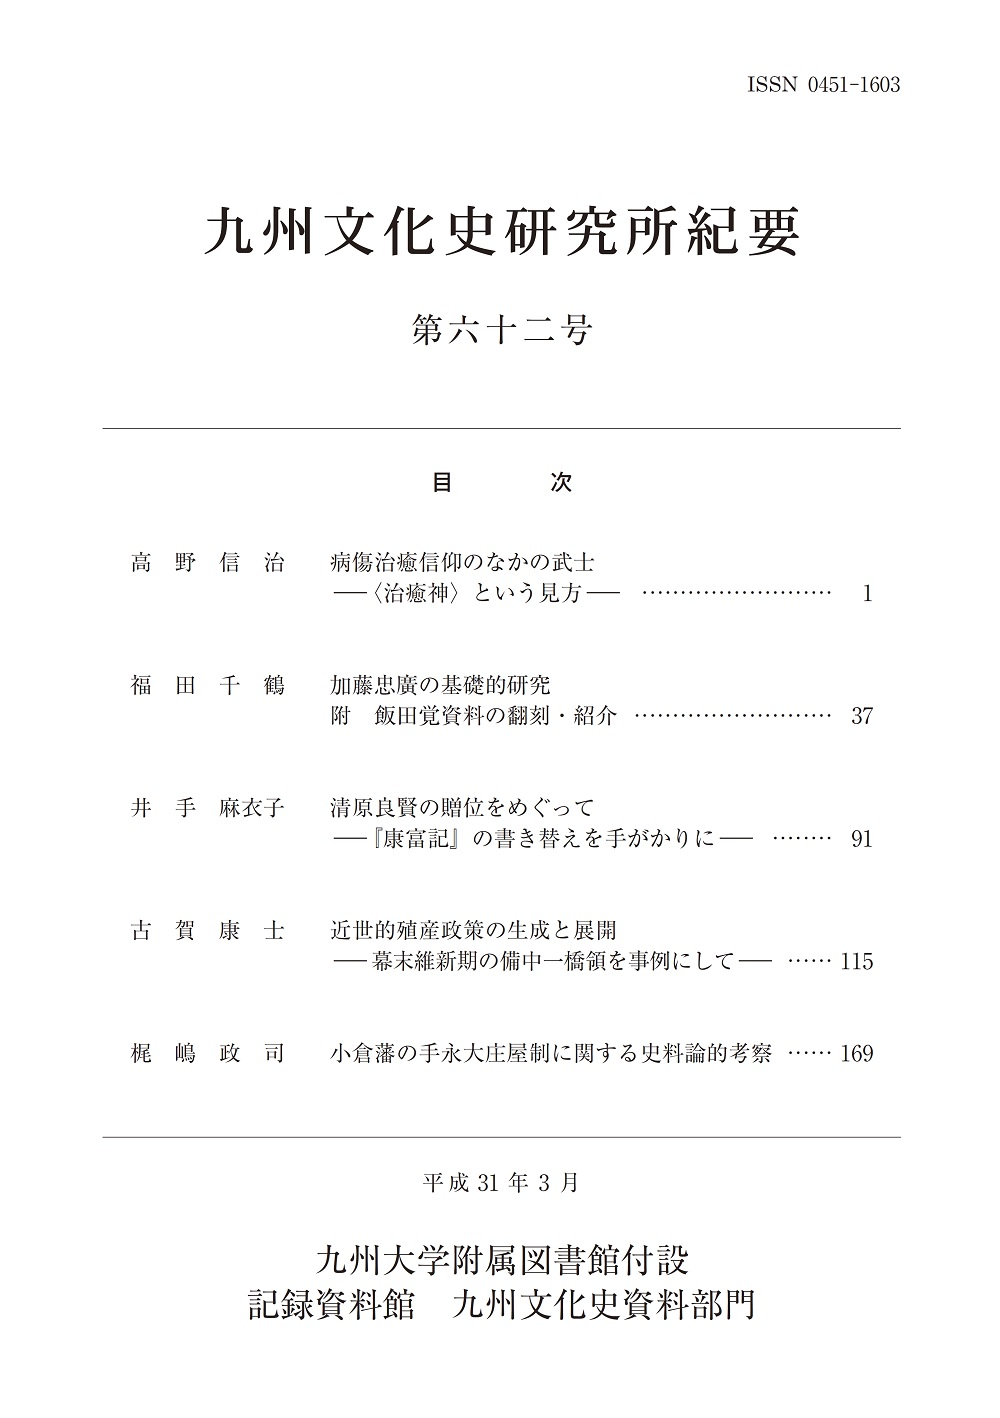 The bulletin of Institute of Research in Kyushu Cultural History